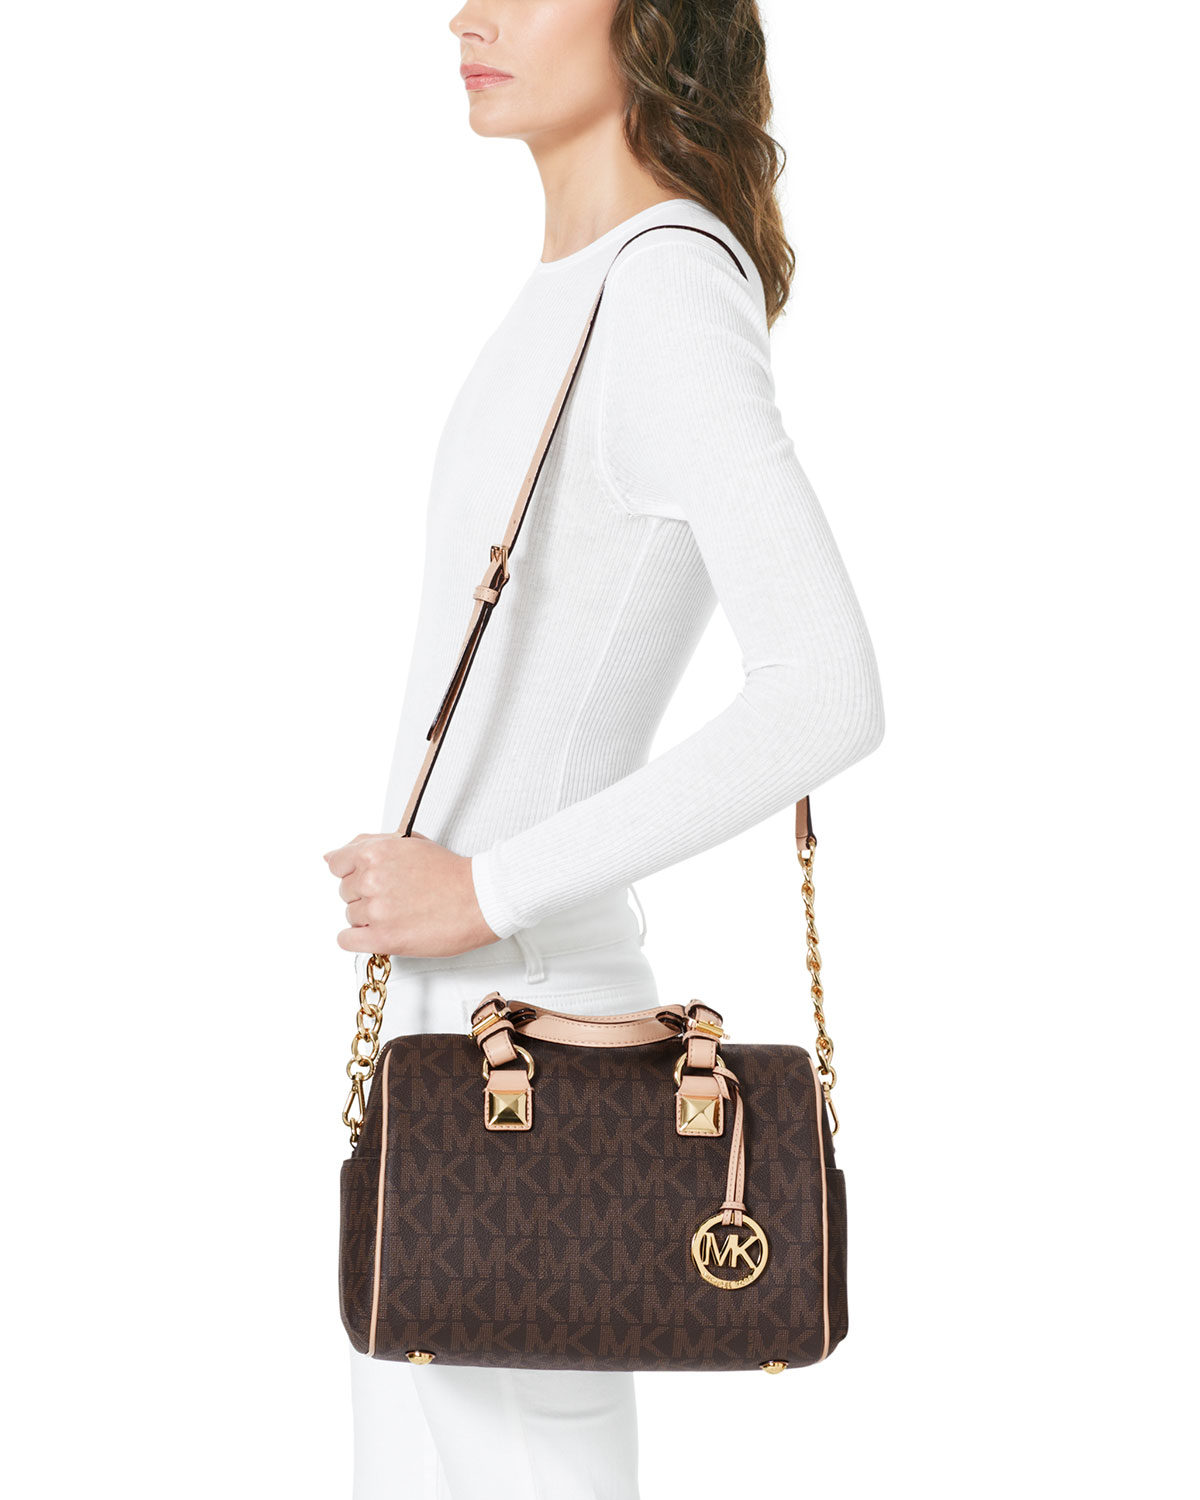 2bd28a464964 ... chain satchel available at nordstrom b7246 11939; sweden gallery.  previously sold at neiman marcus womens michael kors grayson 09fe7 f95df